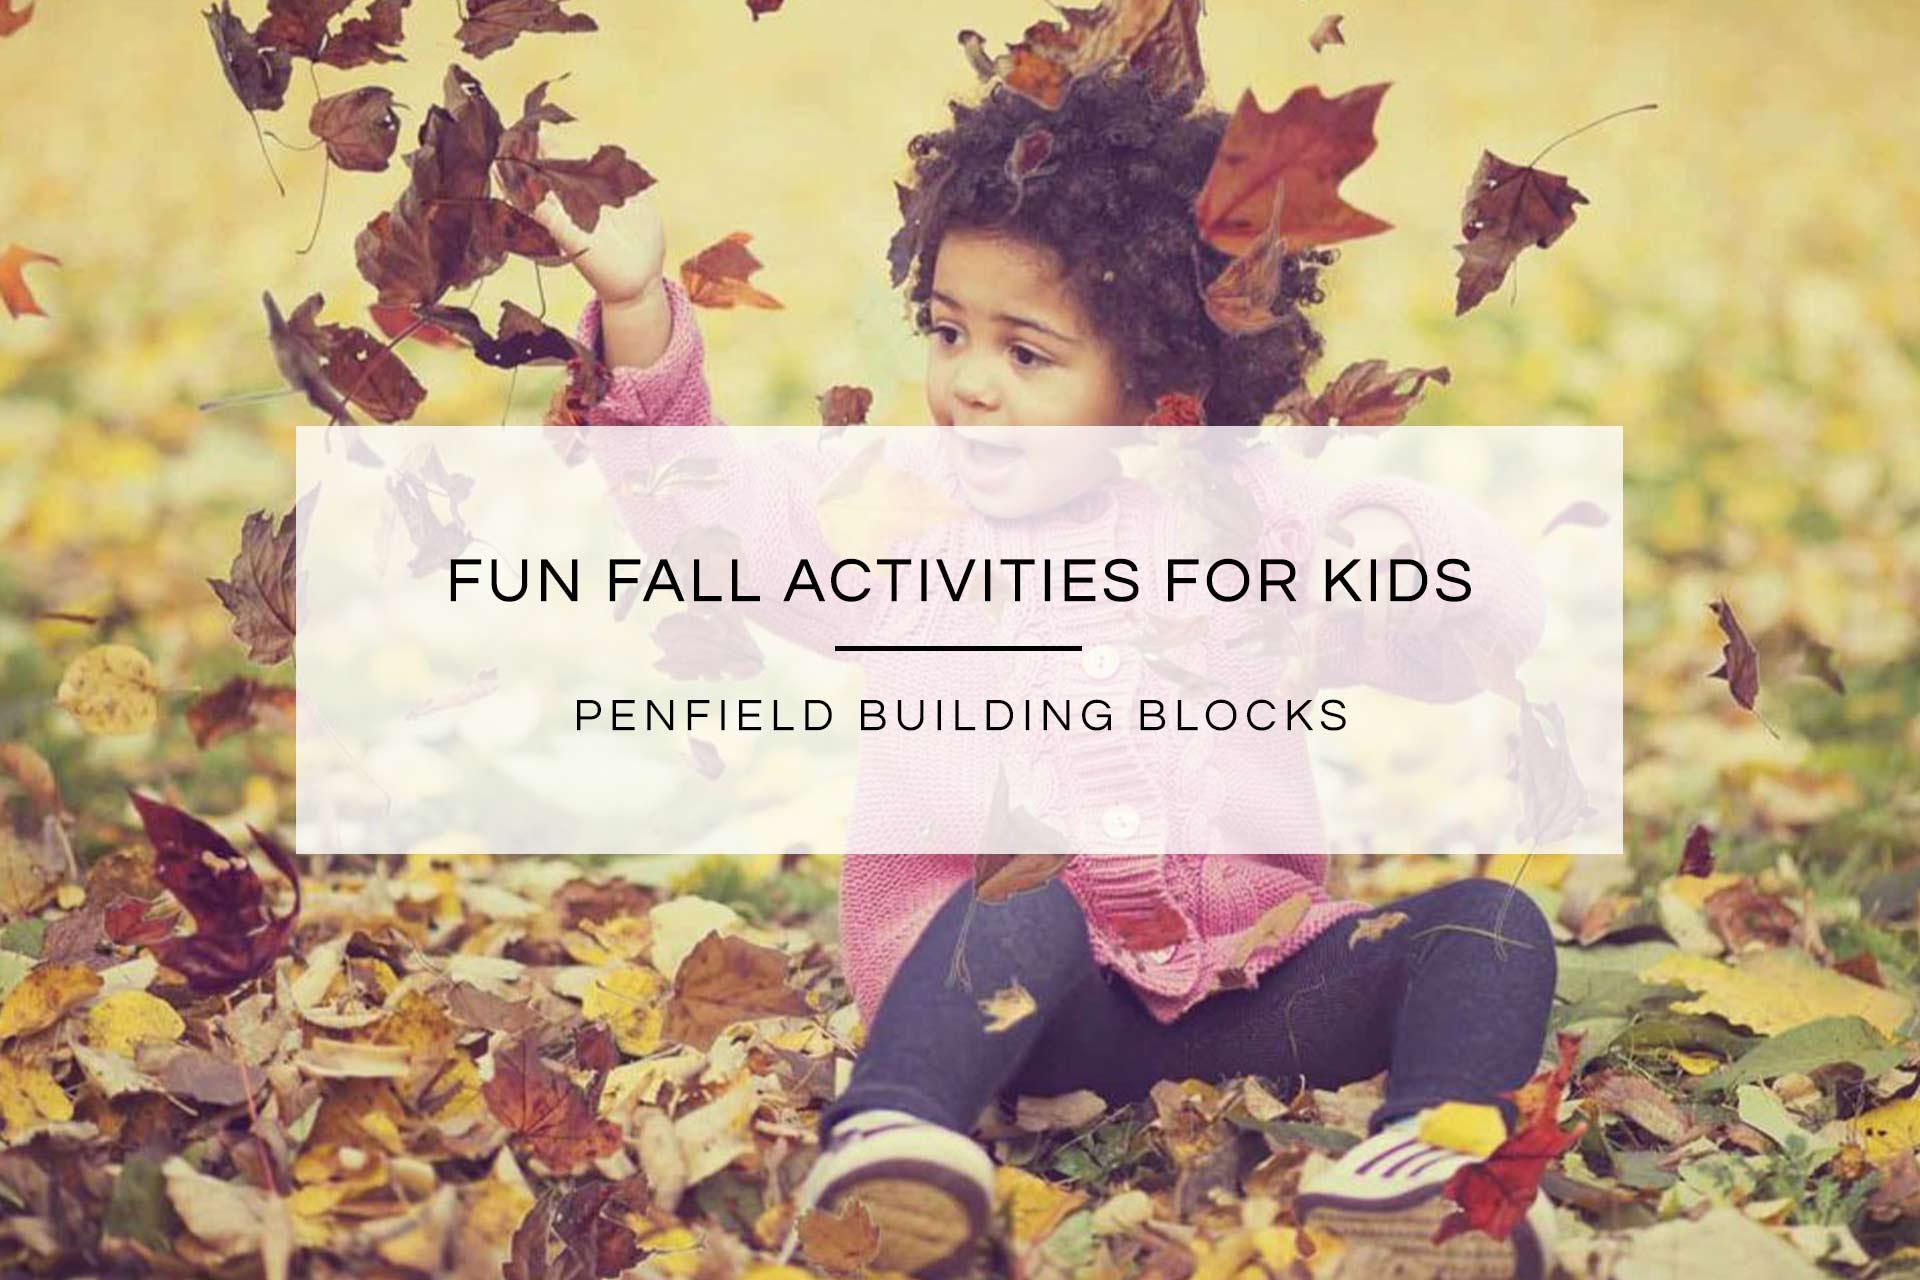 Fun Fall Activities for Kids | Penfield Building Blocks